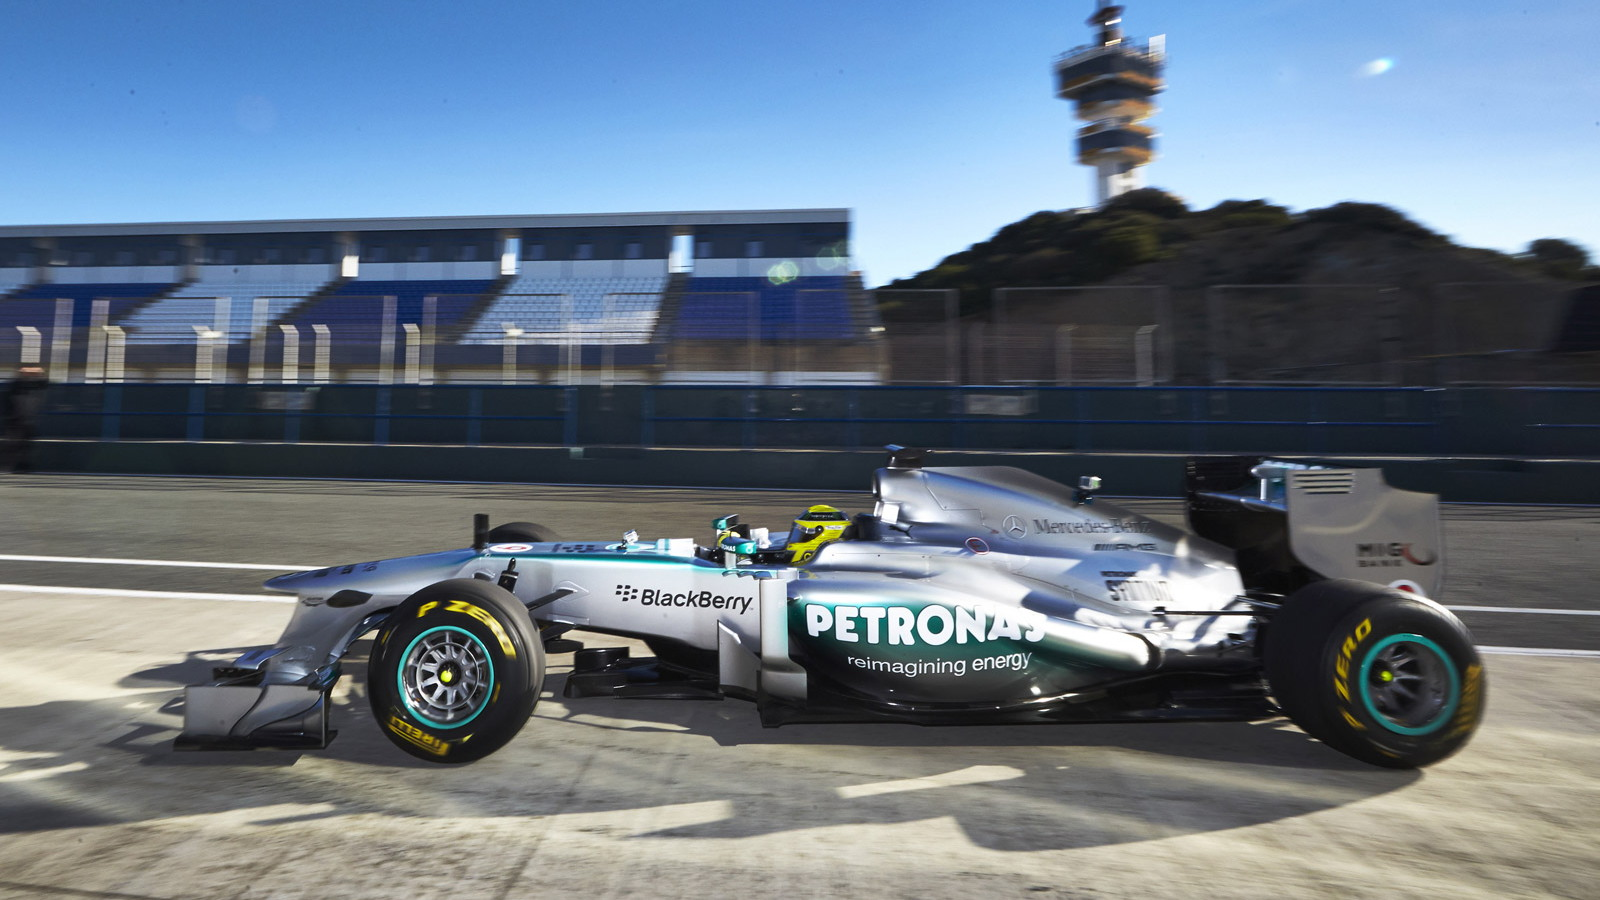 Mercedes AMG's 2013 Formula One race car, the W04